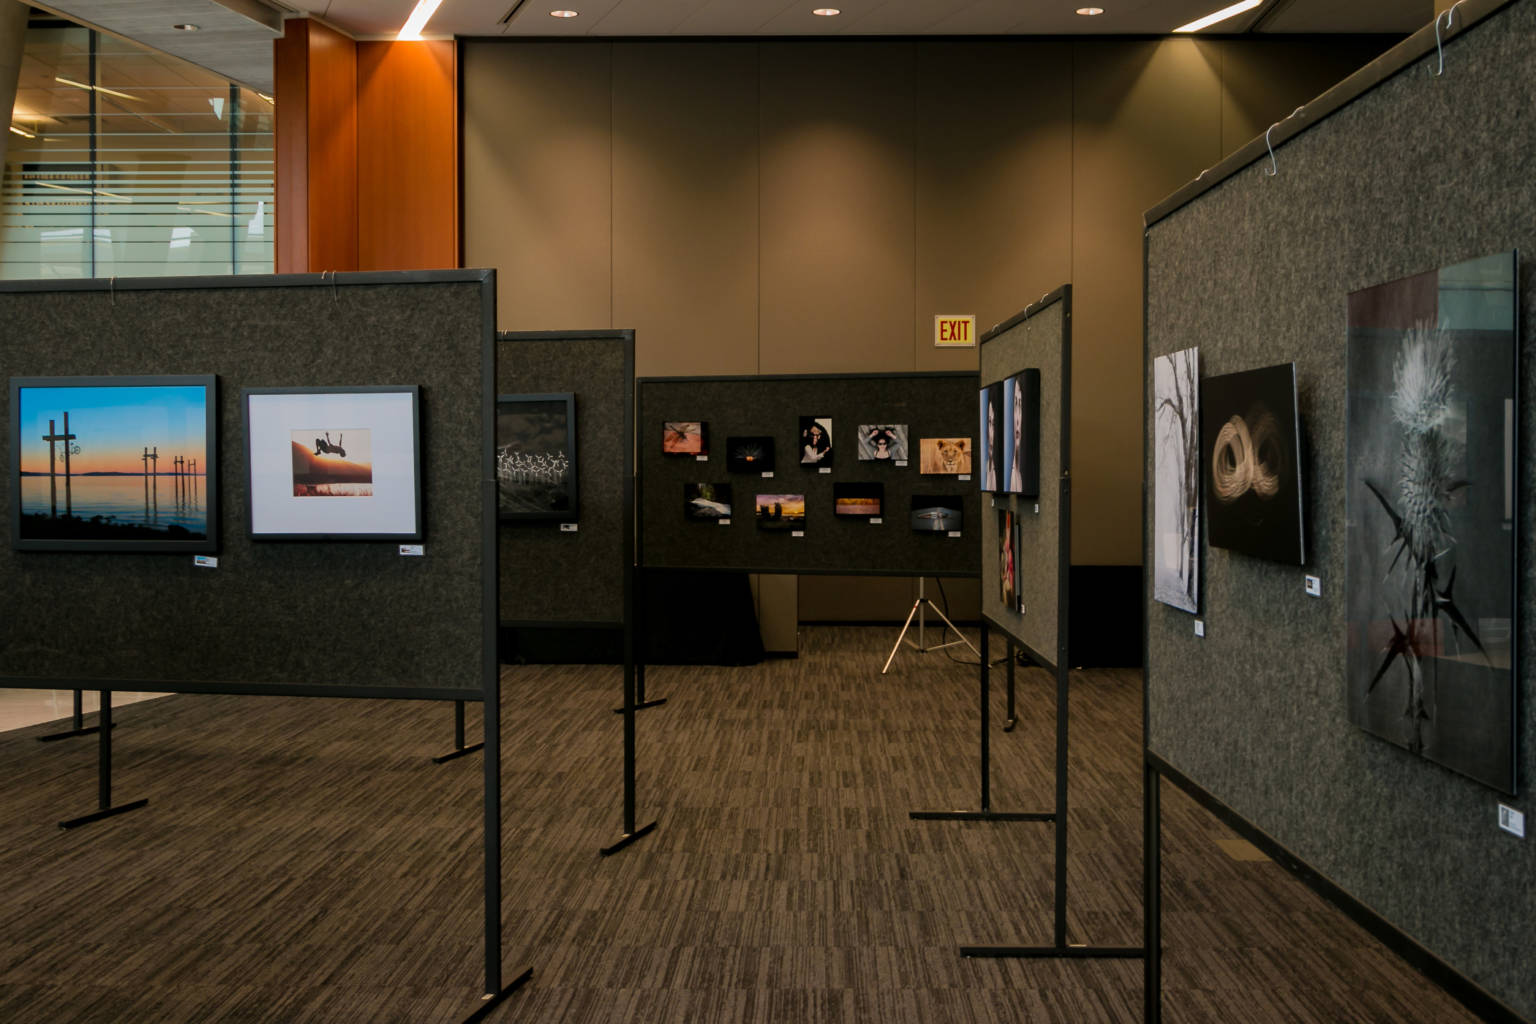 PHOTOGraphie Festival 2015, 2015-09-25, SONY Gallery Exhibition, Anvil Centre, New Westminster BC, PPOC, BC Region